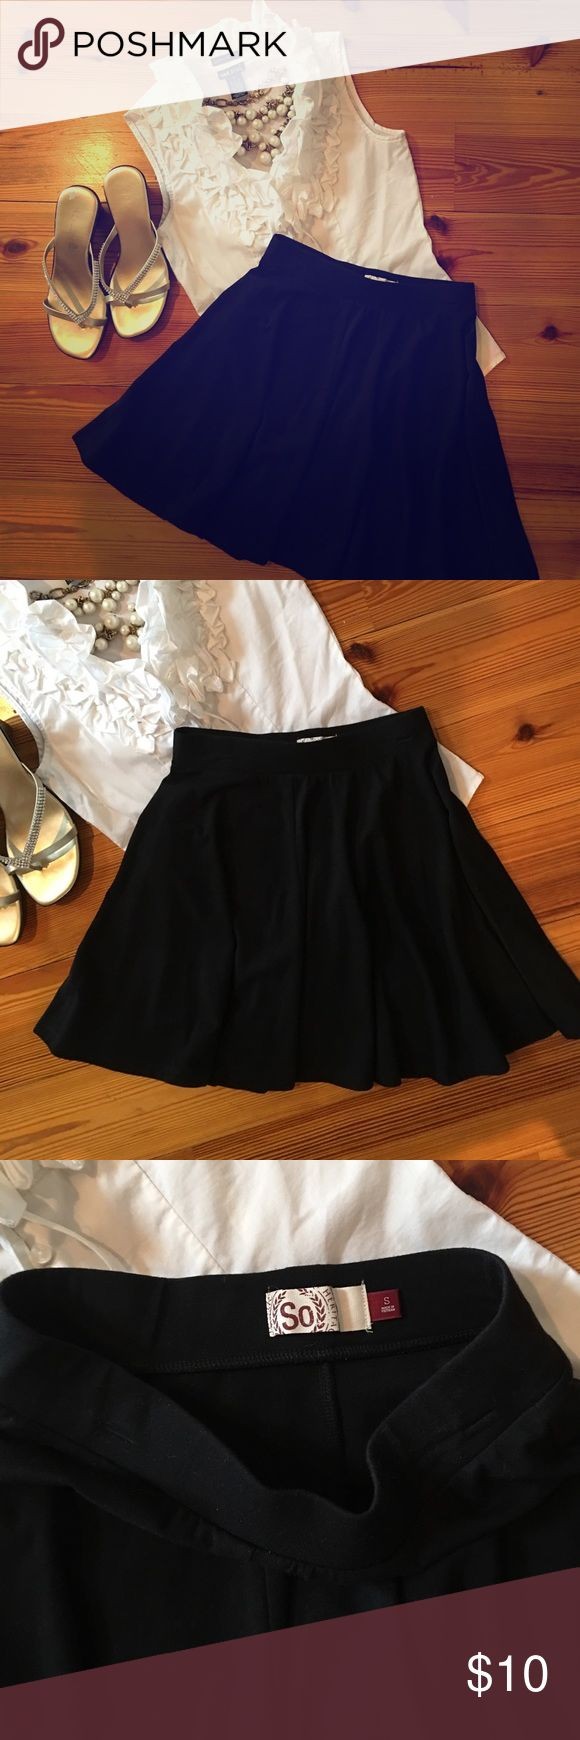 Black, elastic waist A line short skirt Cotton/Spandex blend. Soft and flowing Skirts Mini